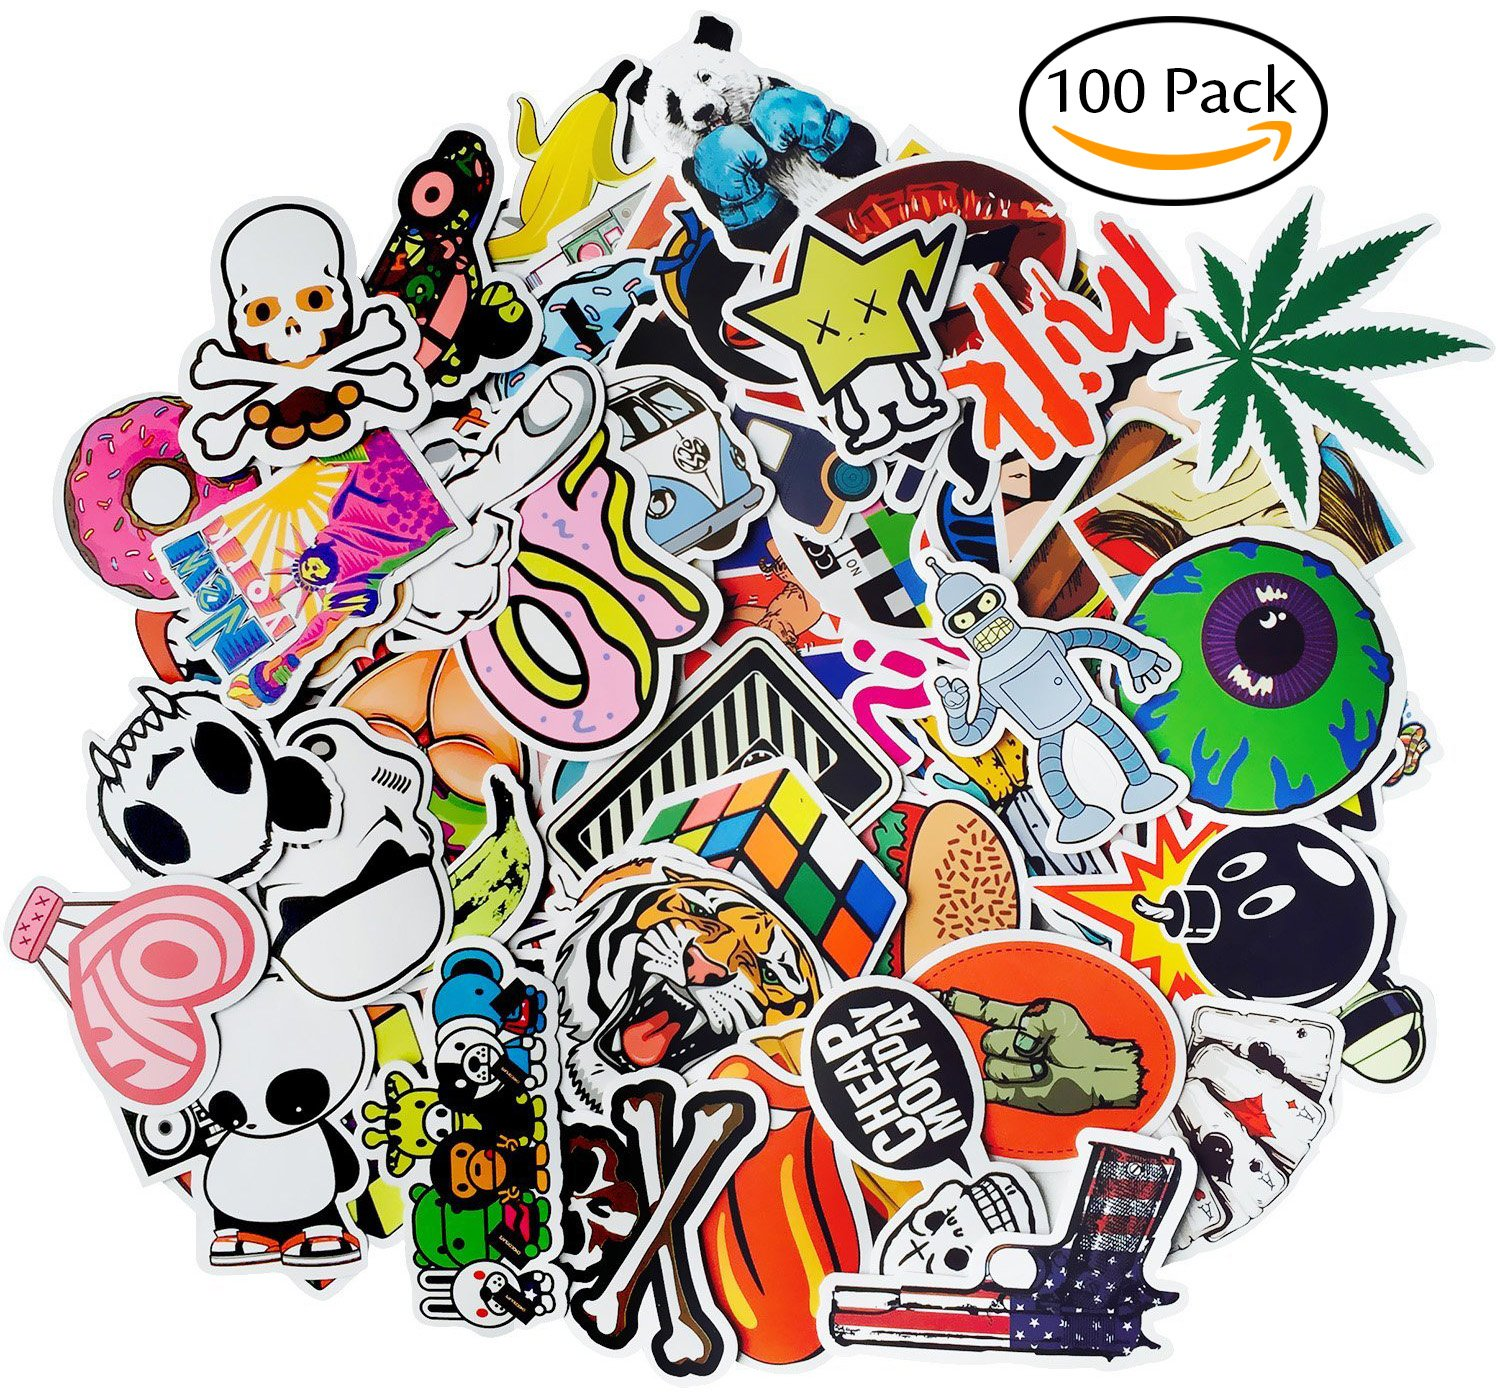 Amazon laptop stickers 100 pcs leyaron vinyl car stickers amazon laptop stickers 100 pcs leyaron vinyl car stickers motorcycle bicycle luggage decal graffiti patches skateboard stickers for laptop random amipublicfo Gallery